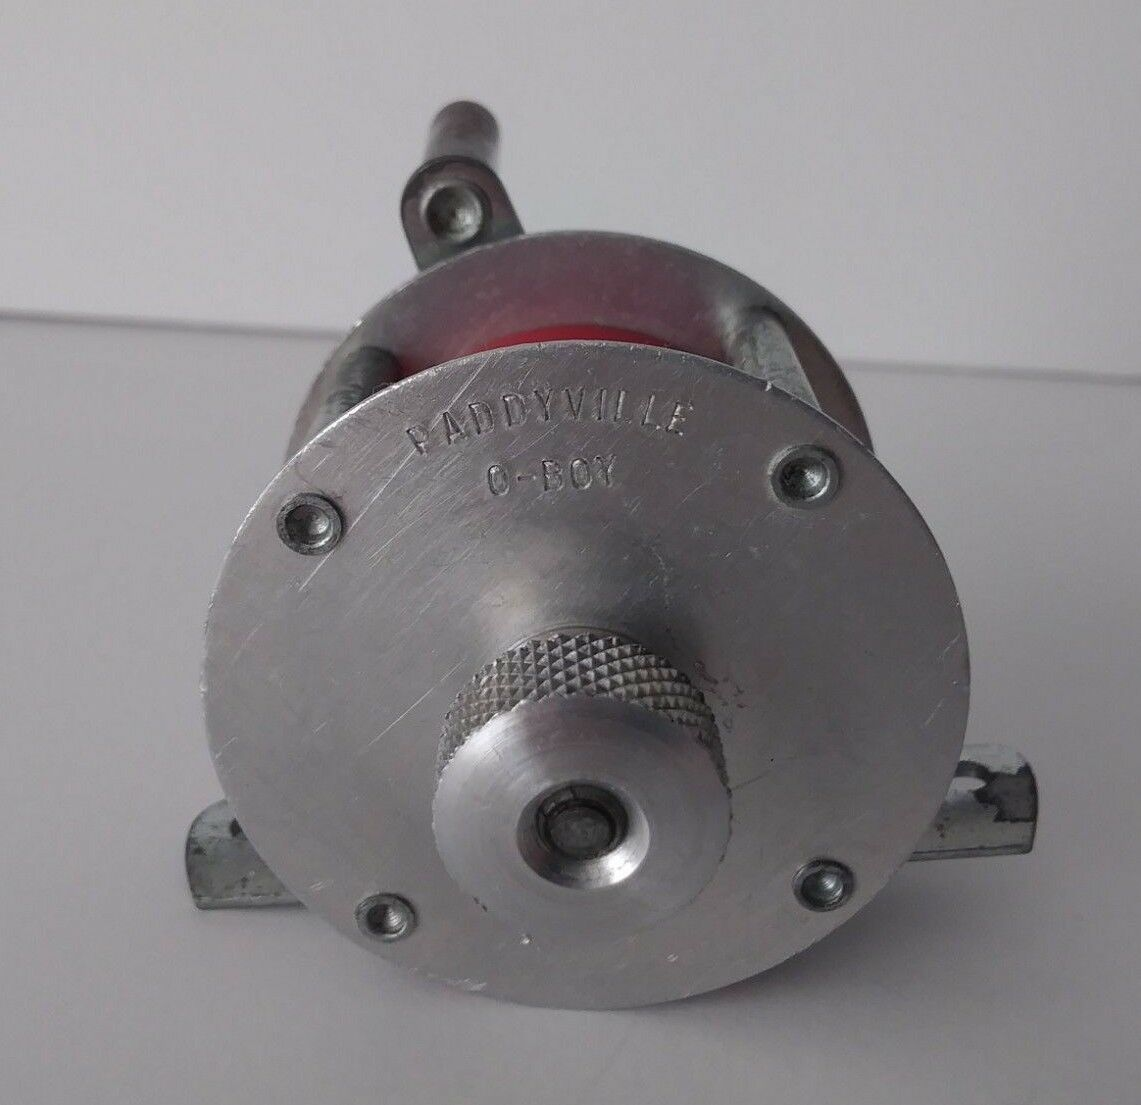 Vintage PADDYVILLE O-BOY Ice Fishing Jig Reel CLEAN & OILED Spins Smooth RARE